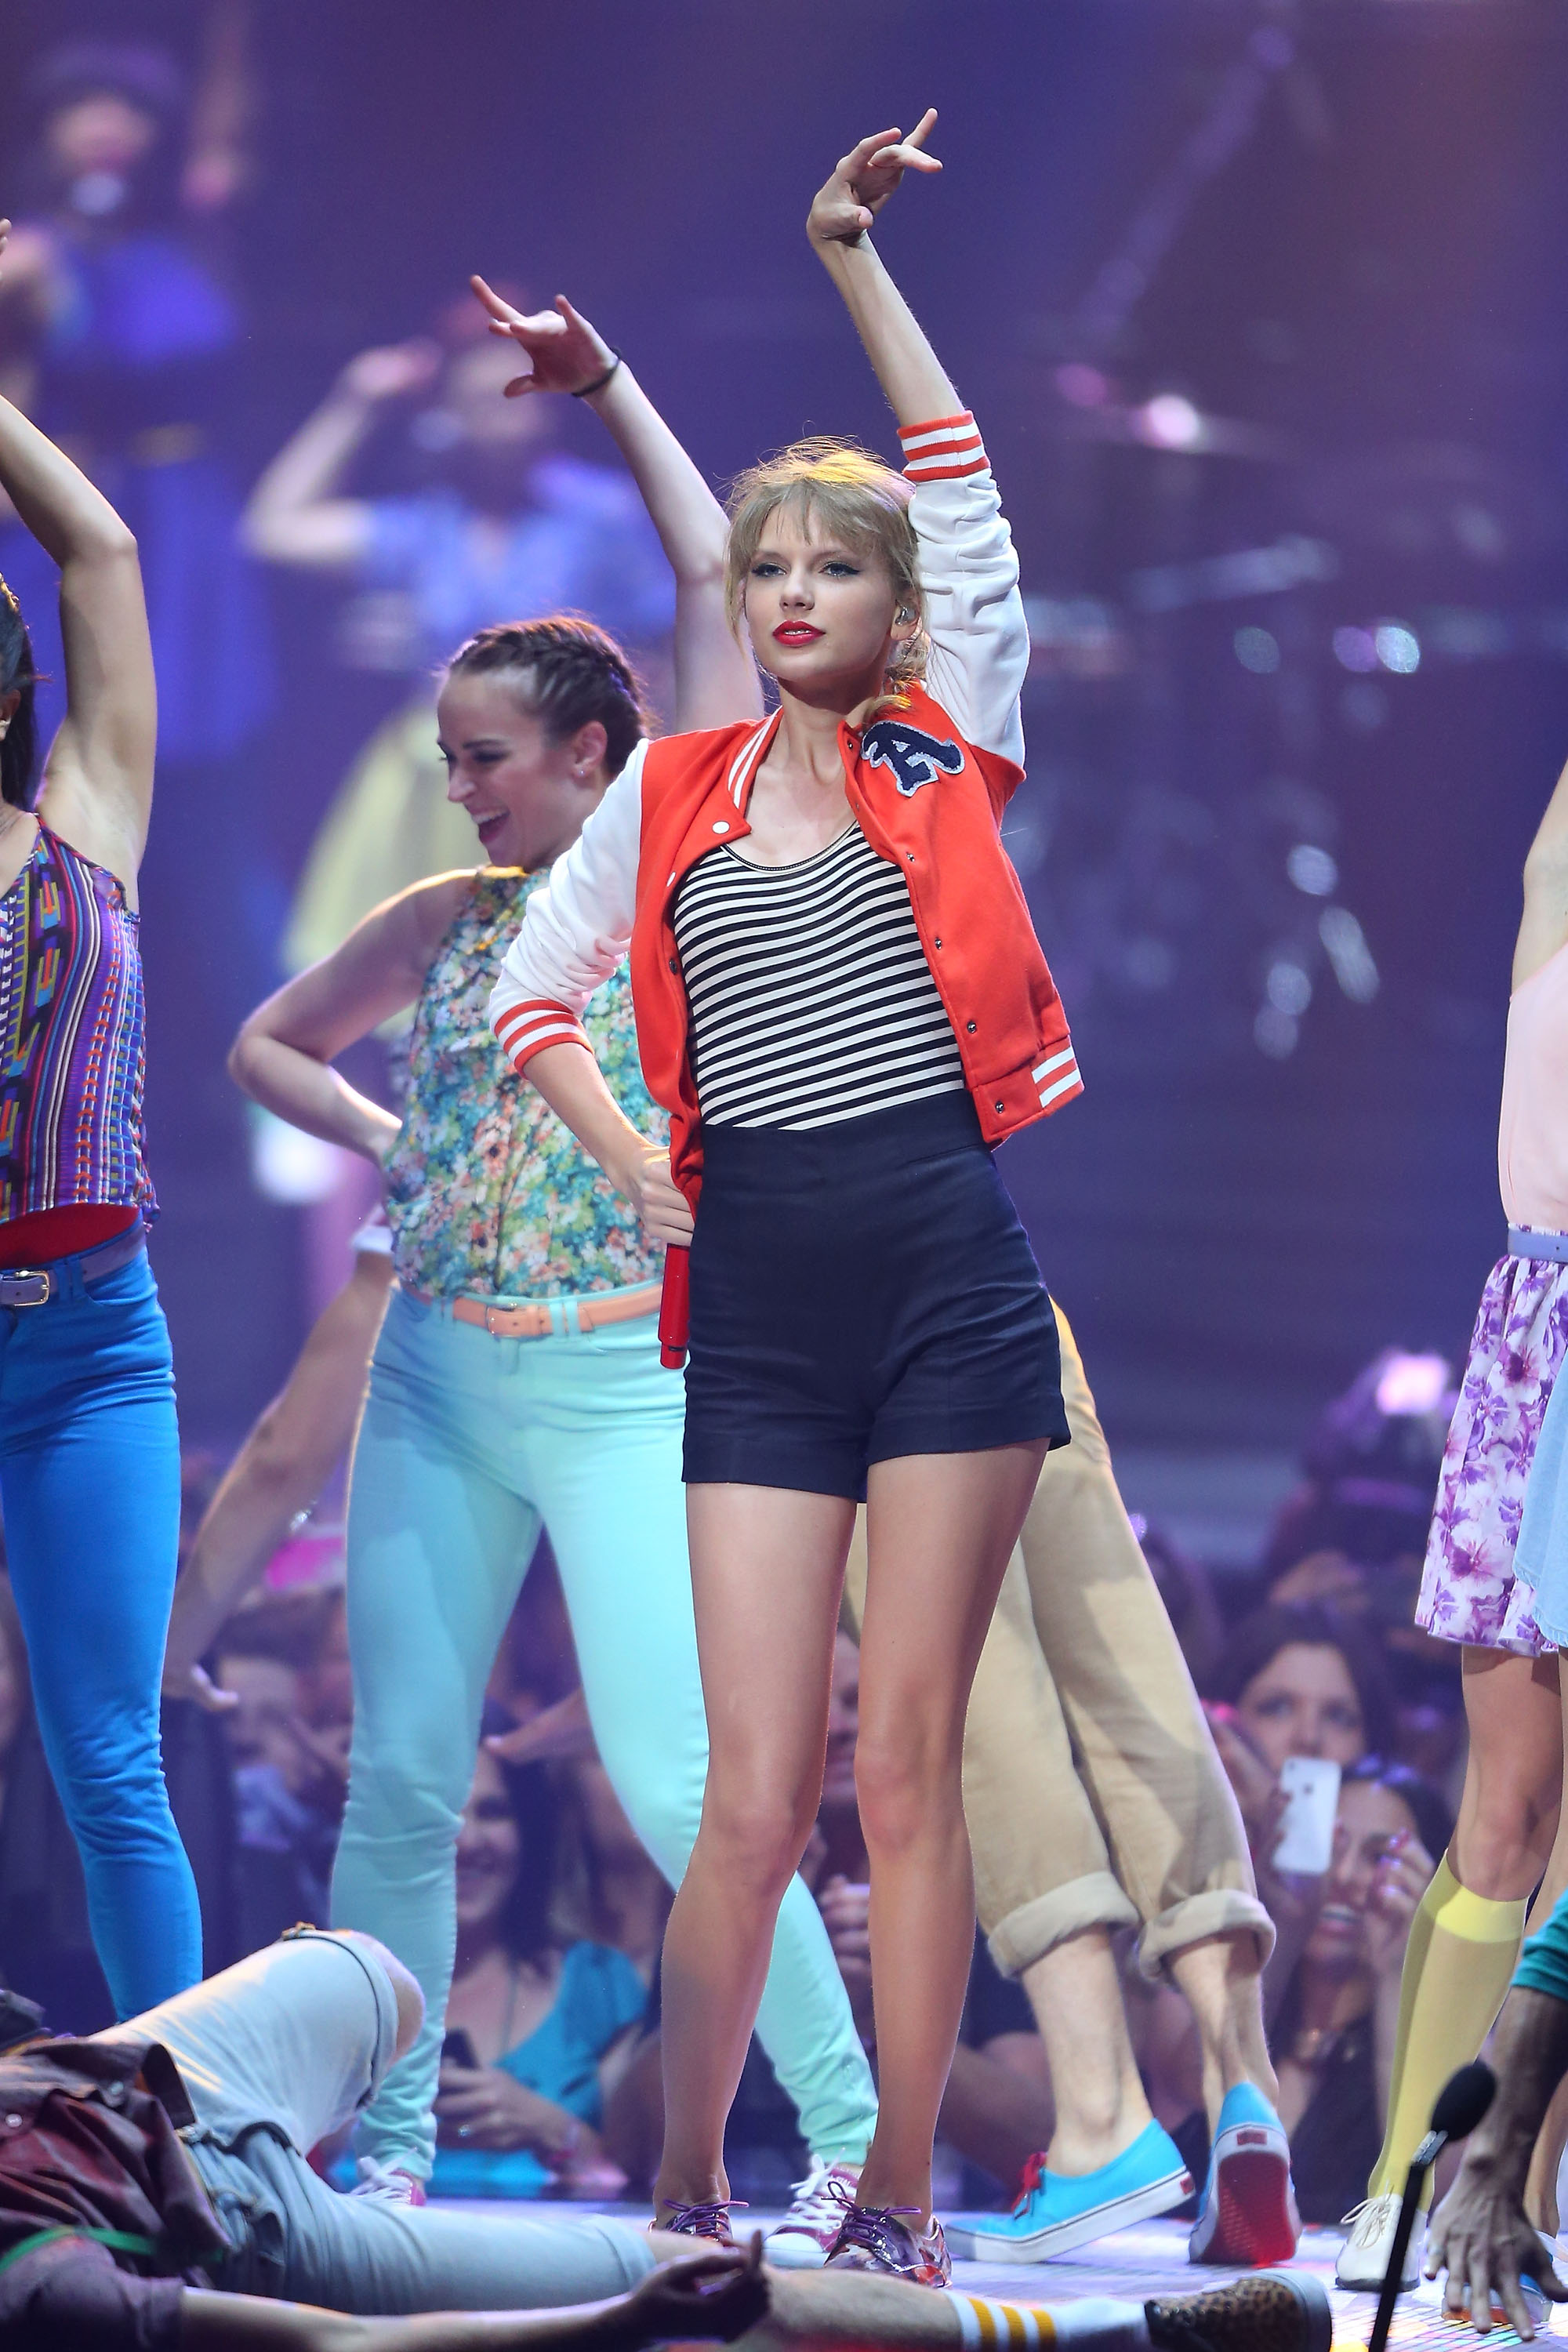 Taylor Swift got on stage to perform in Sydney.